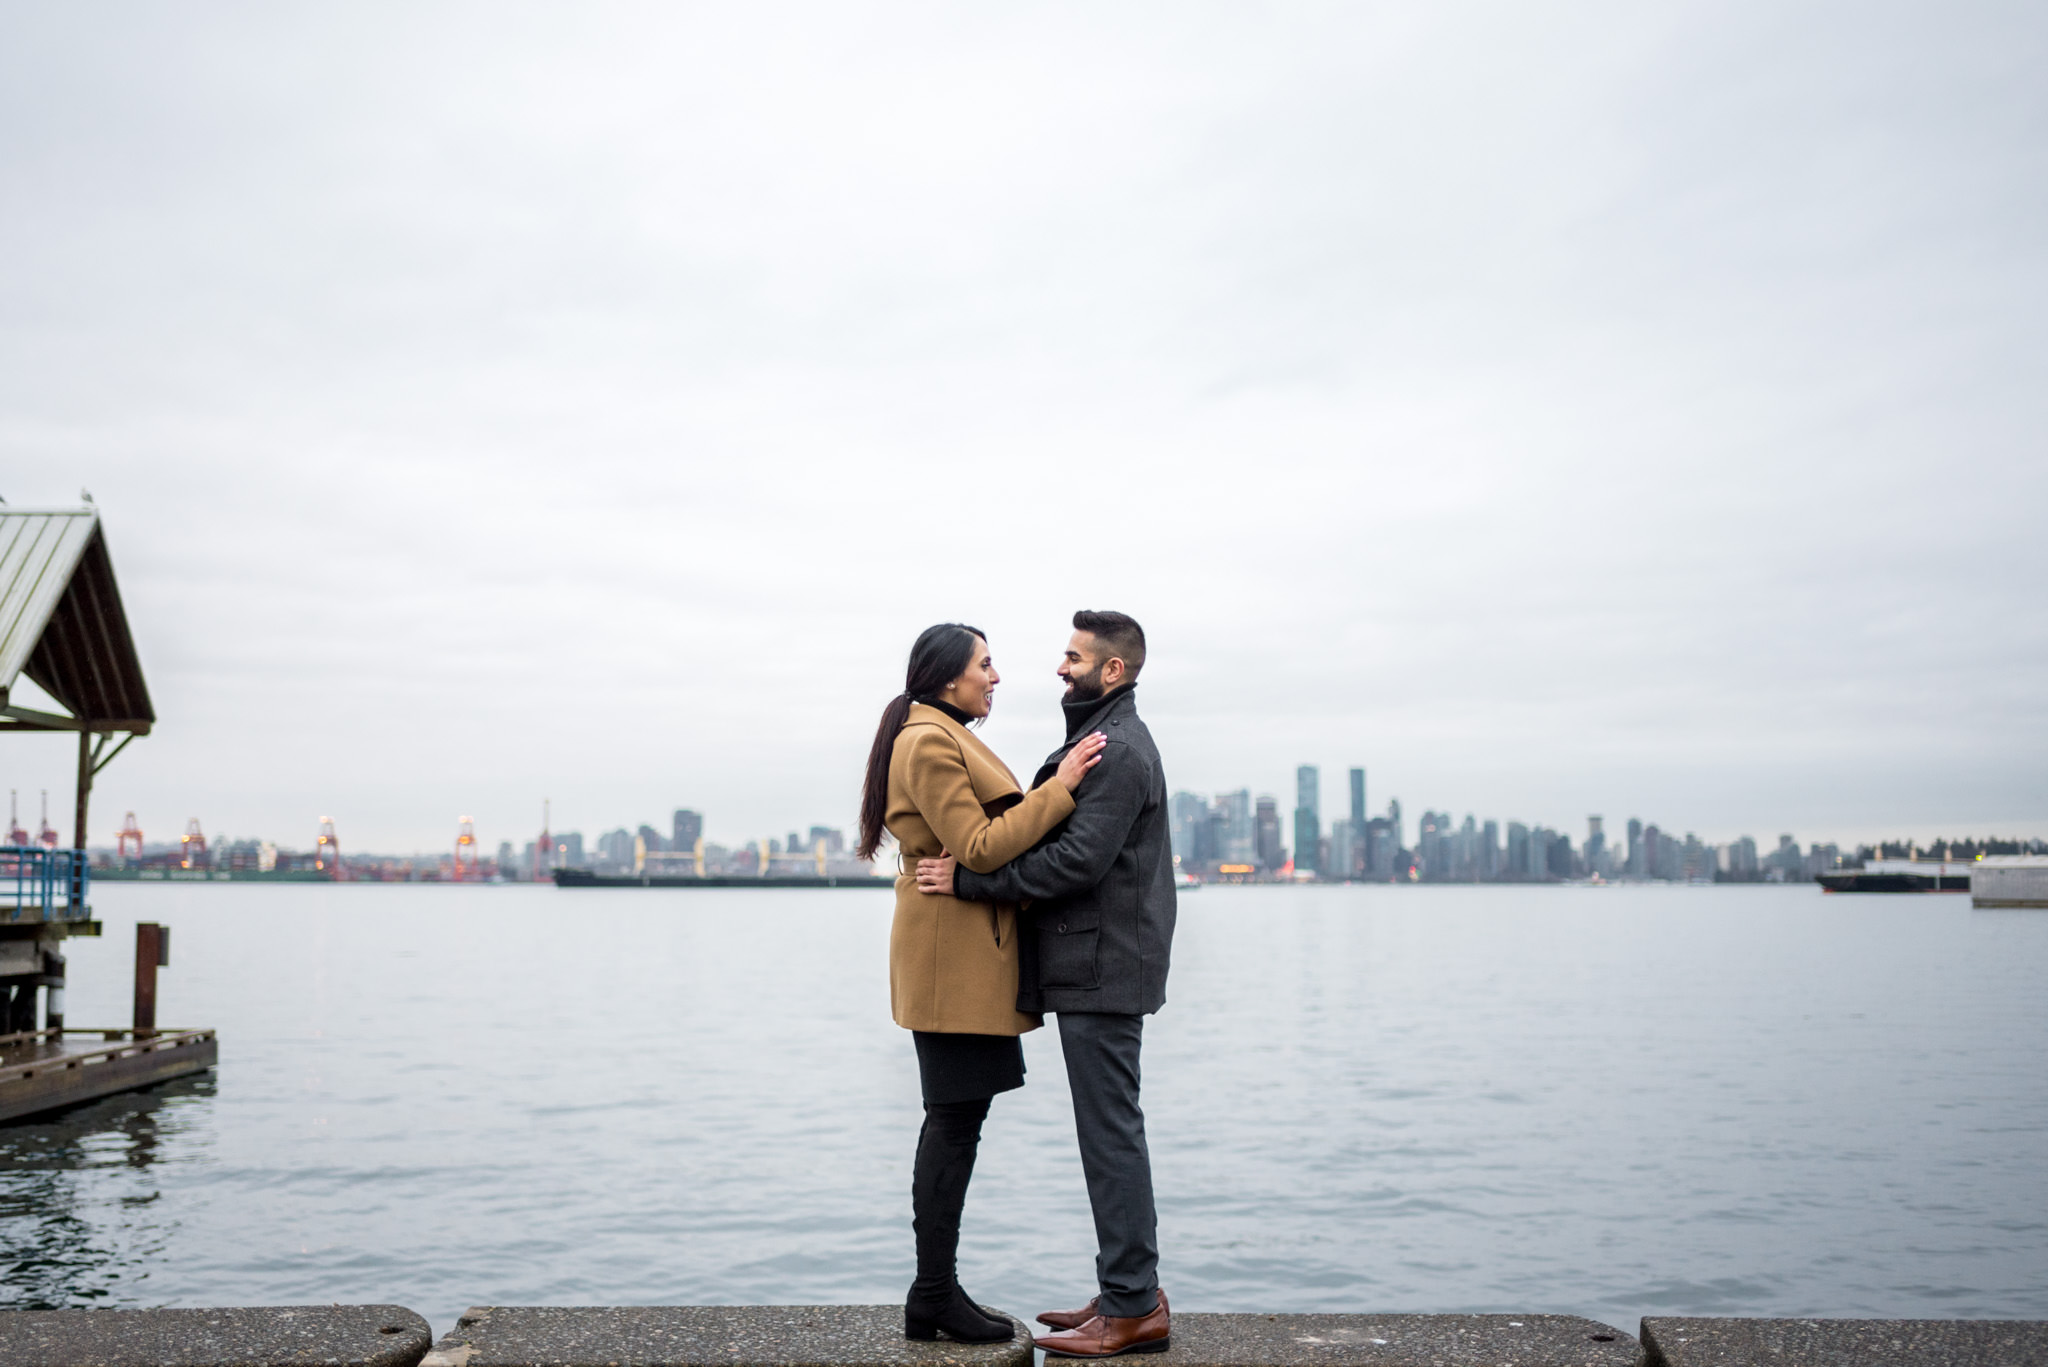 Lonsdale Quay Proposal Photographer-140.JPG